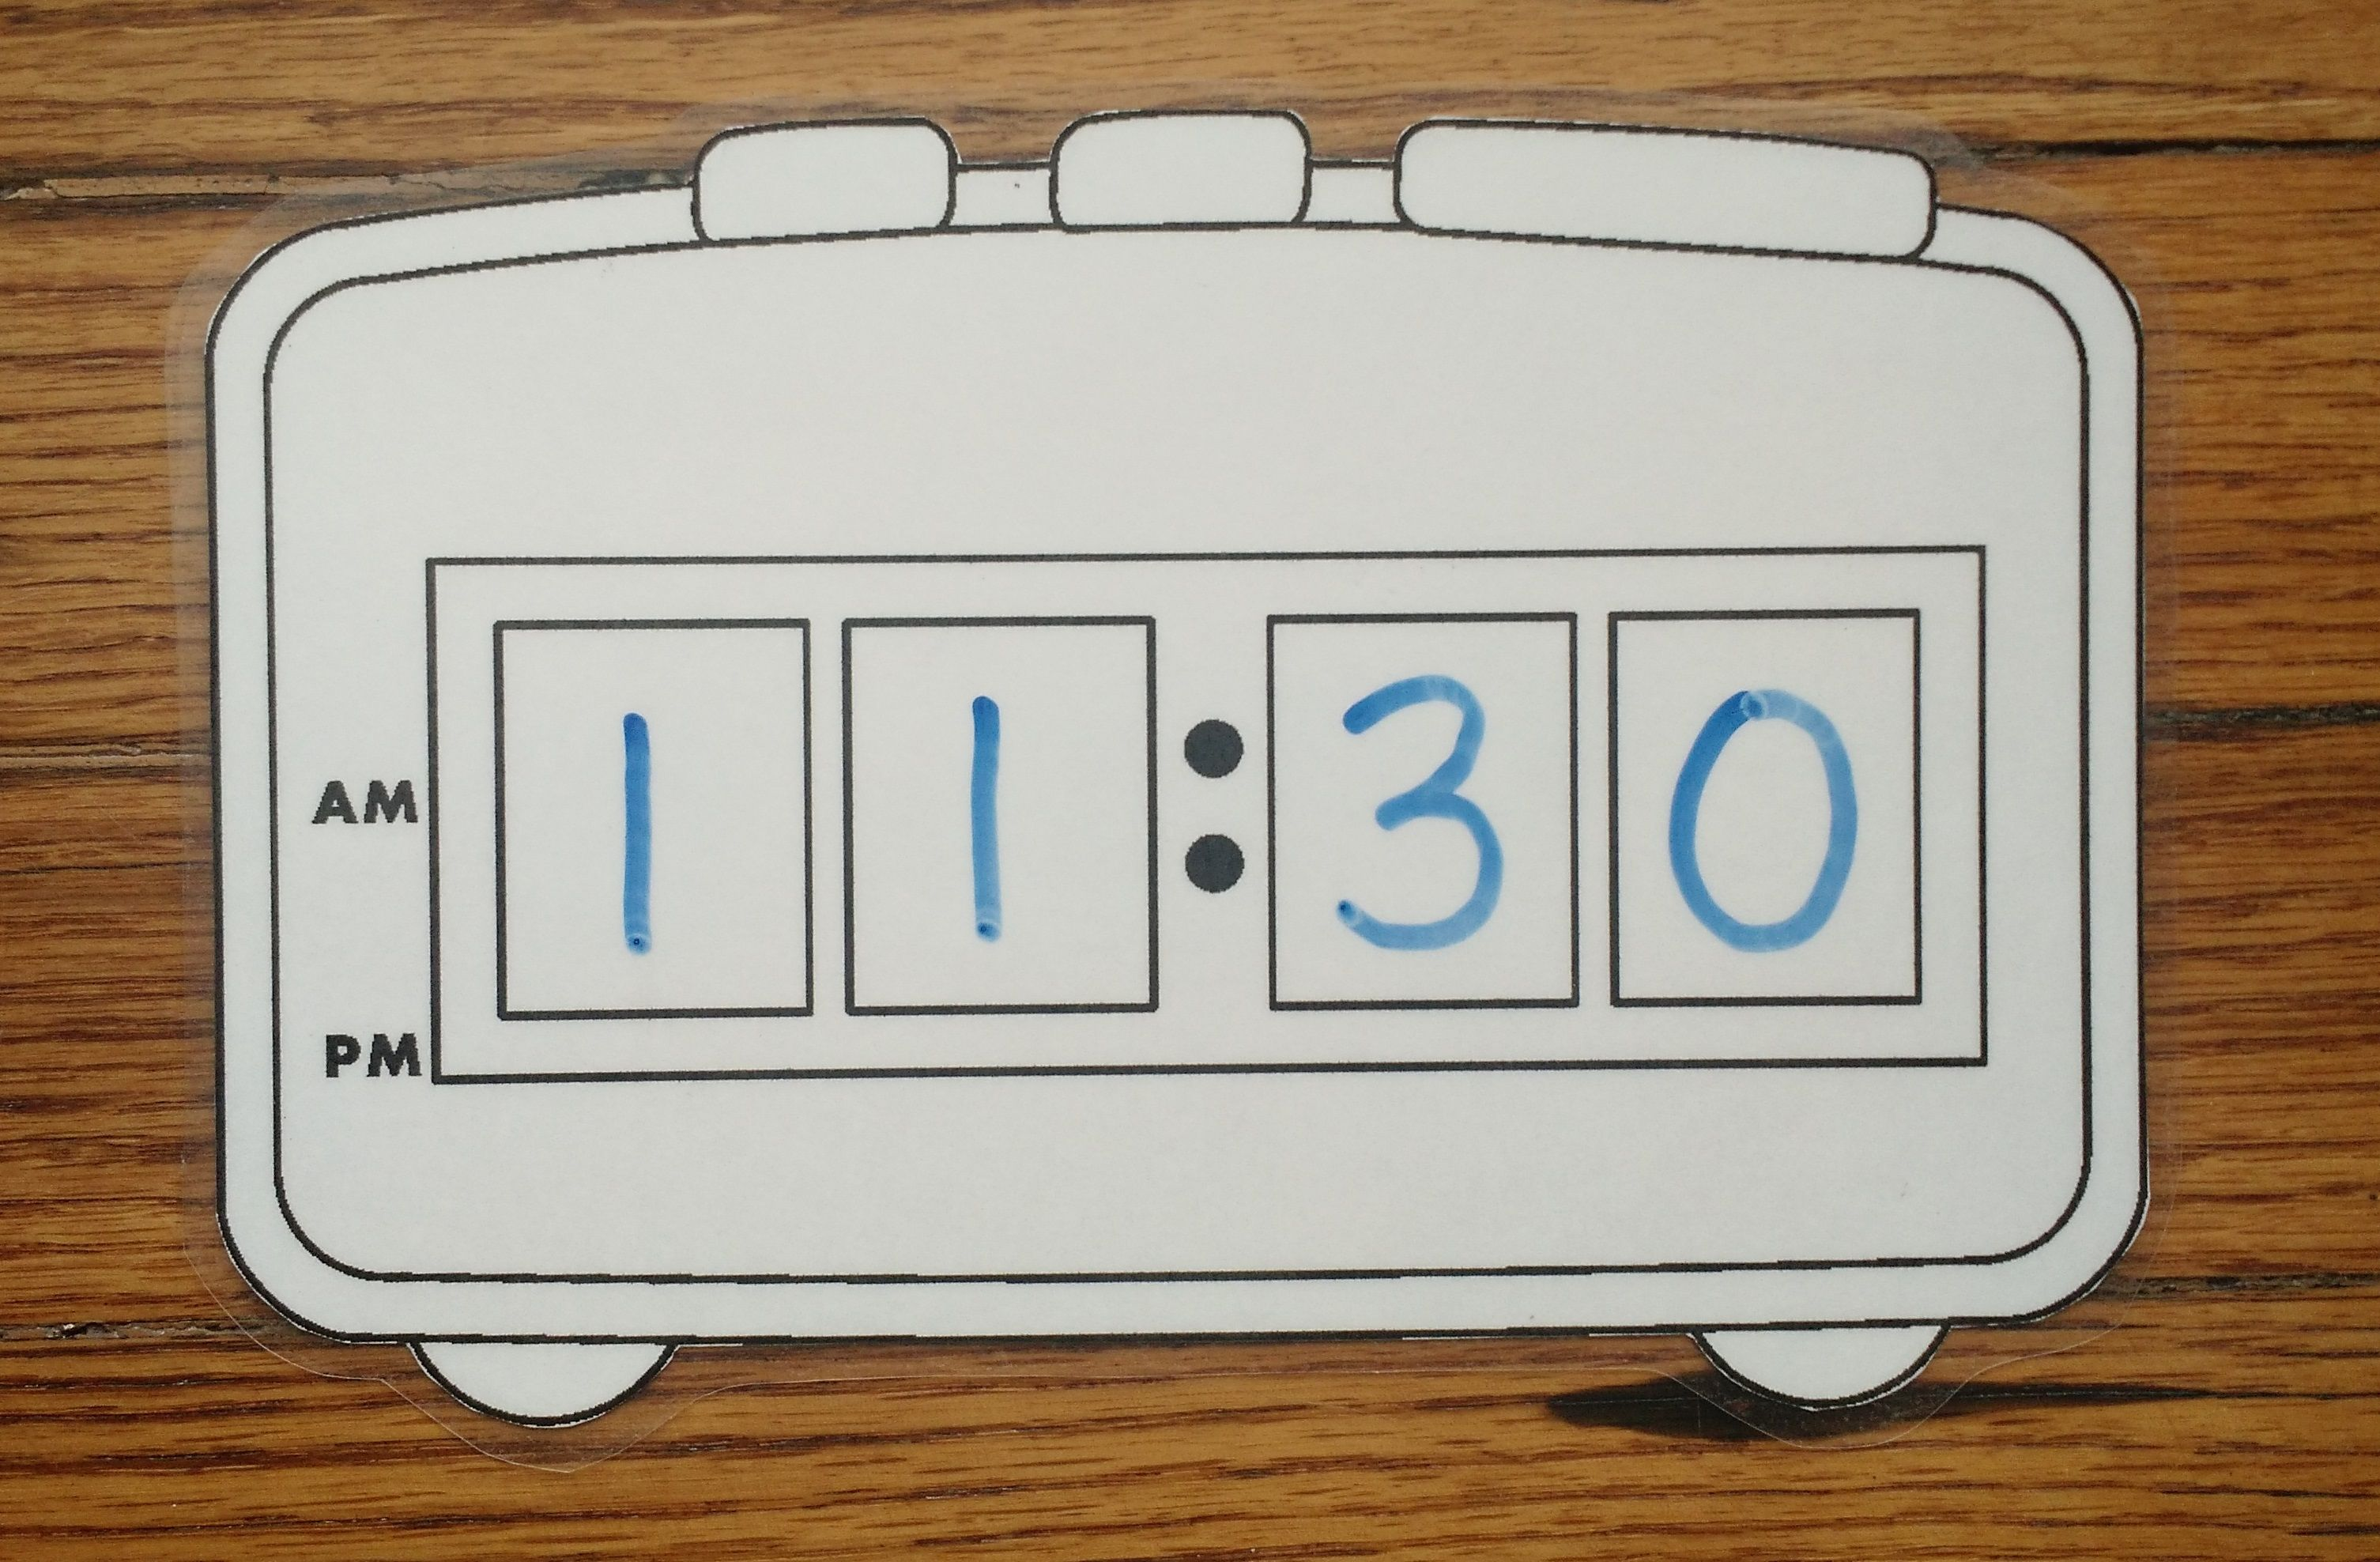 Tell Time With A Digital Clock Laminate The Digital Clock Template And Use Dry Erase Markers To